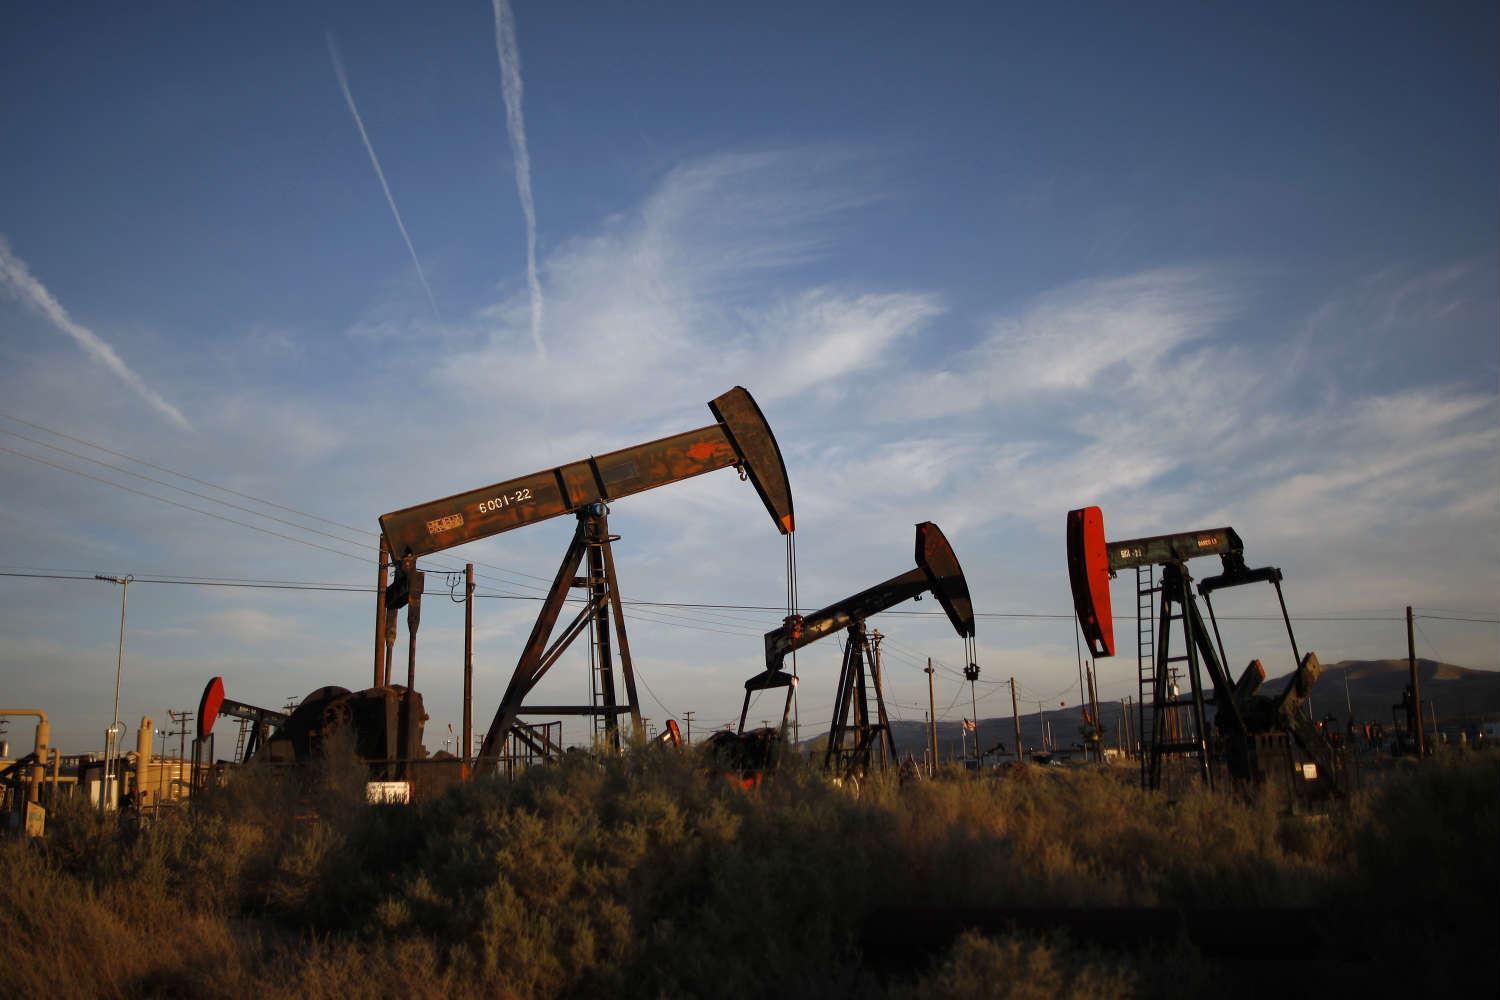 Environmentalists fear that fracking could cause more quakes if it expands to California